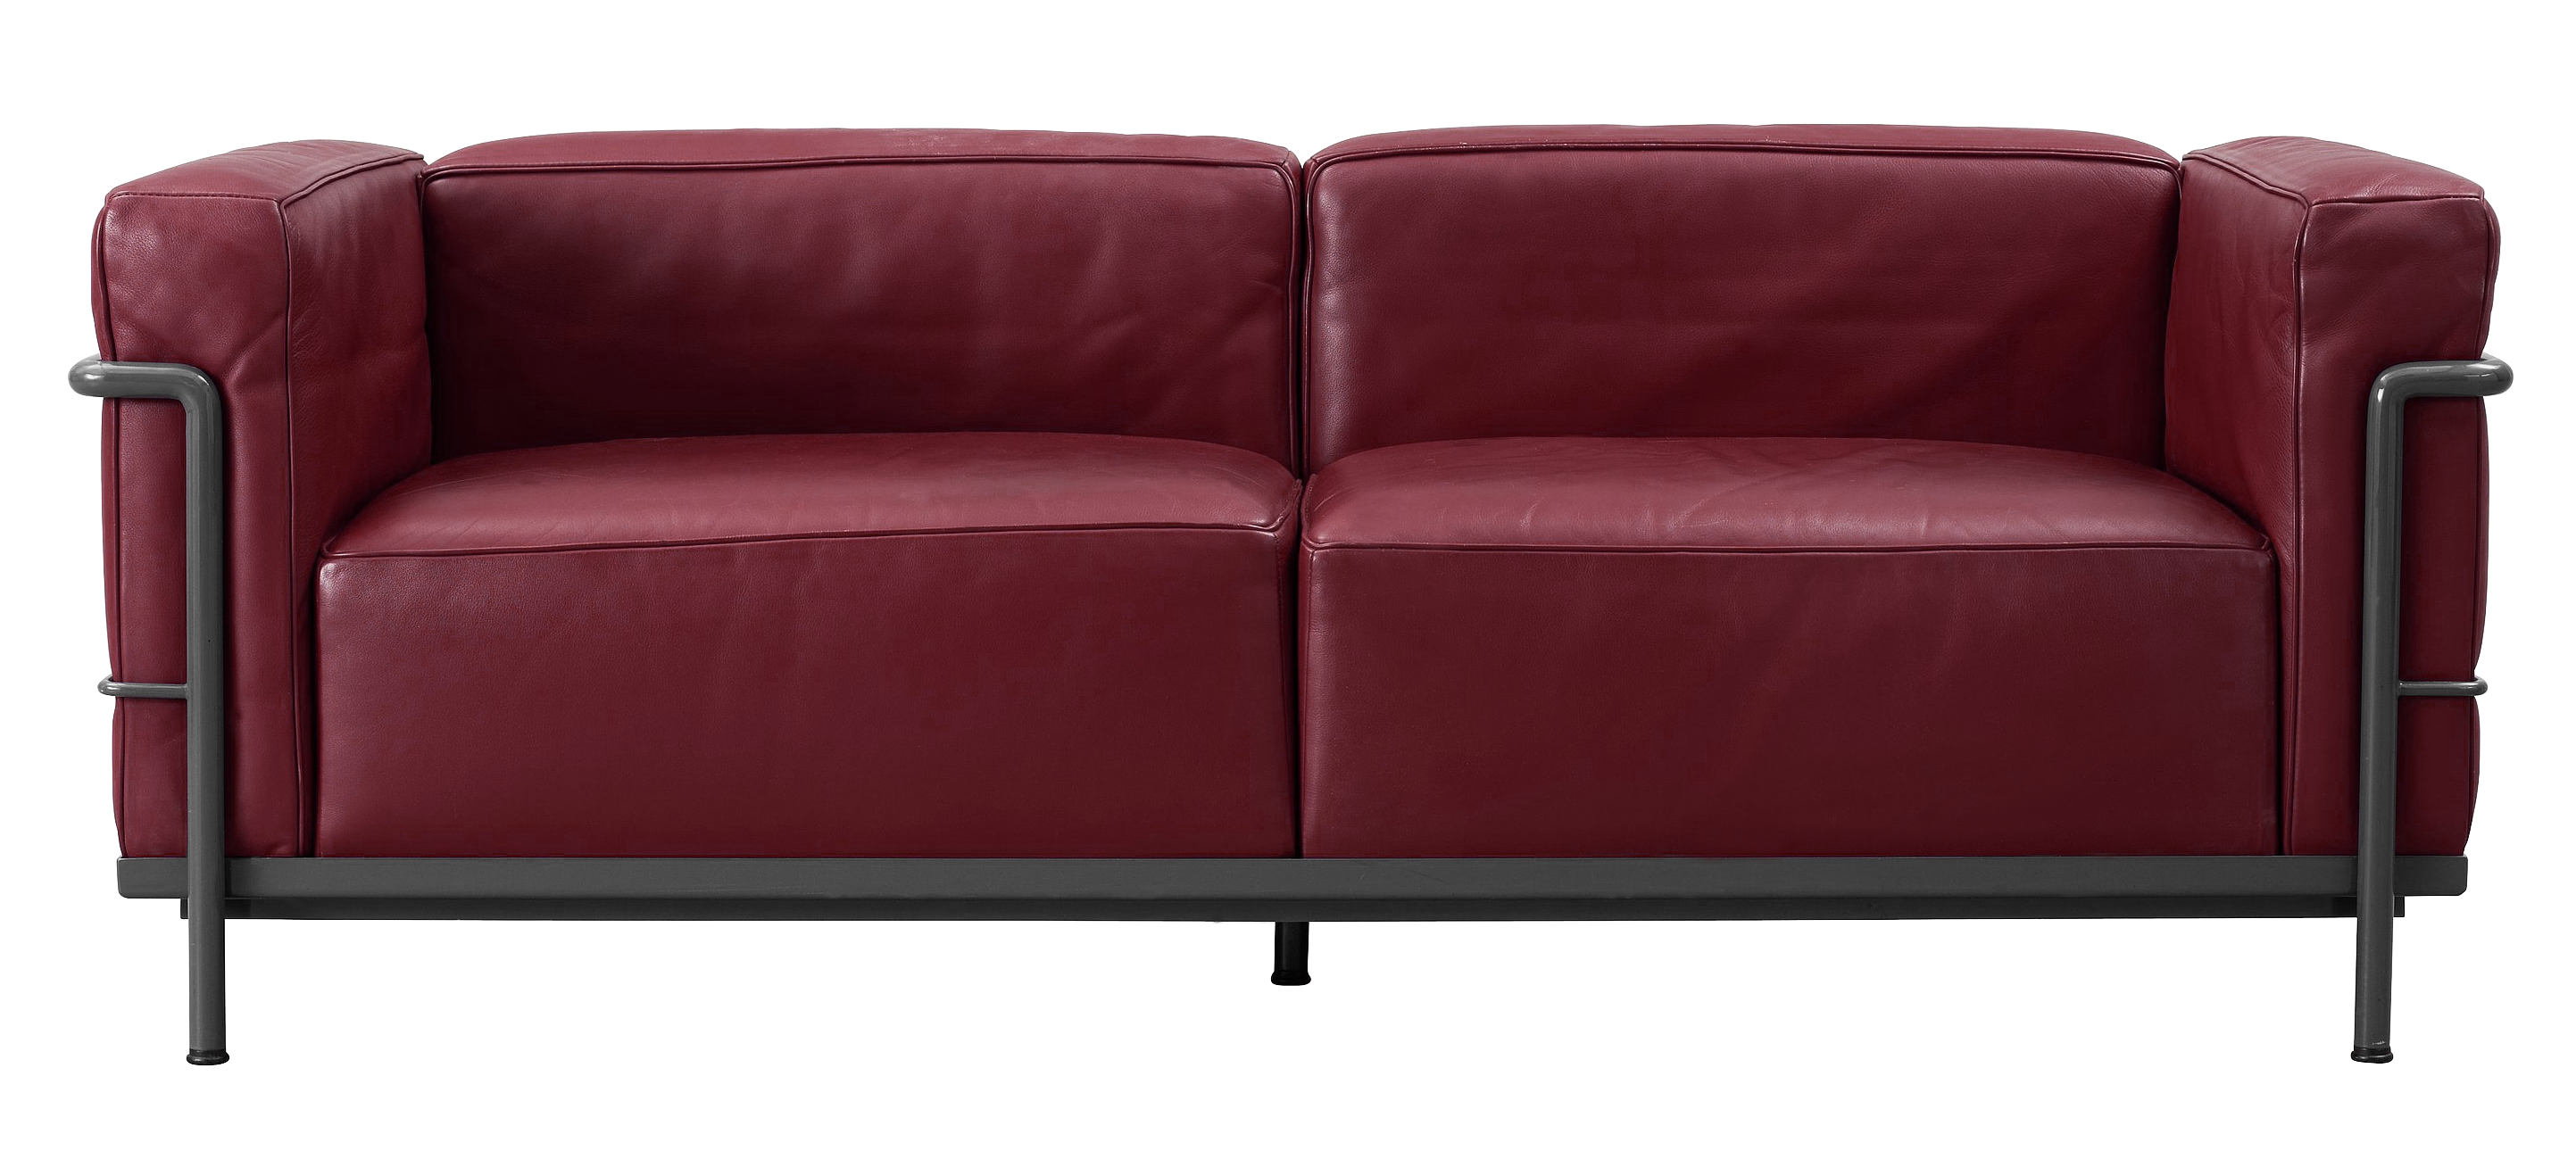 Leather couch png. Red lobby picture gallery